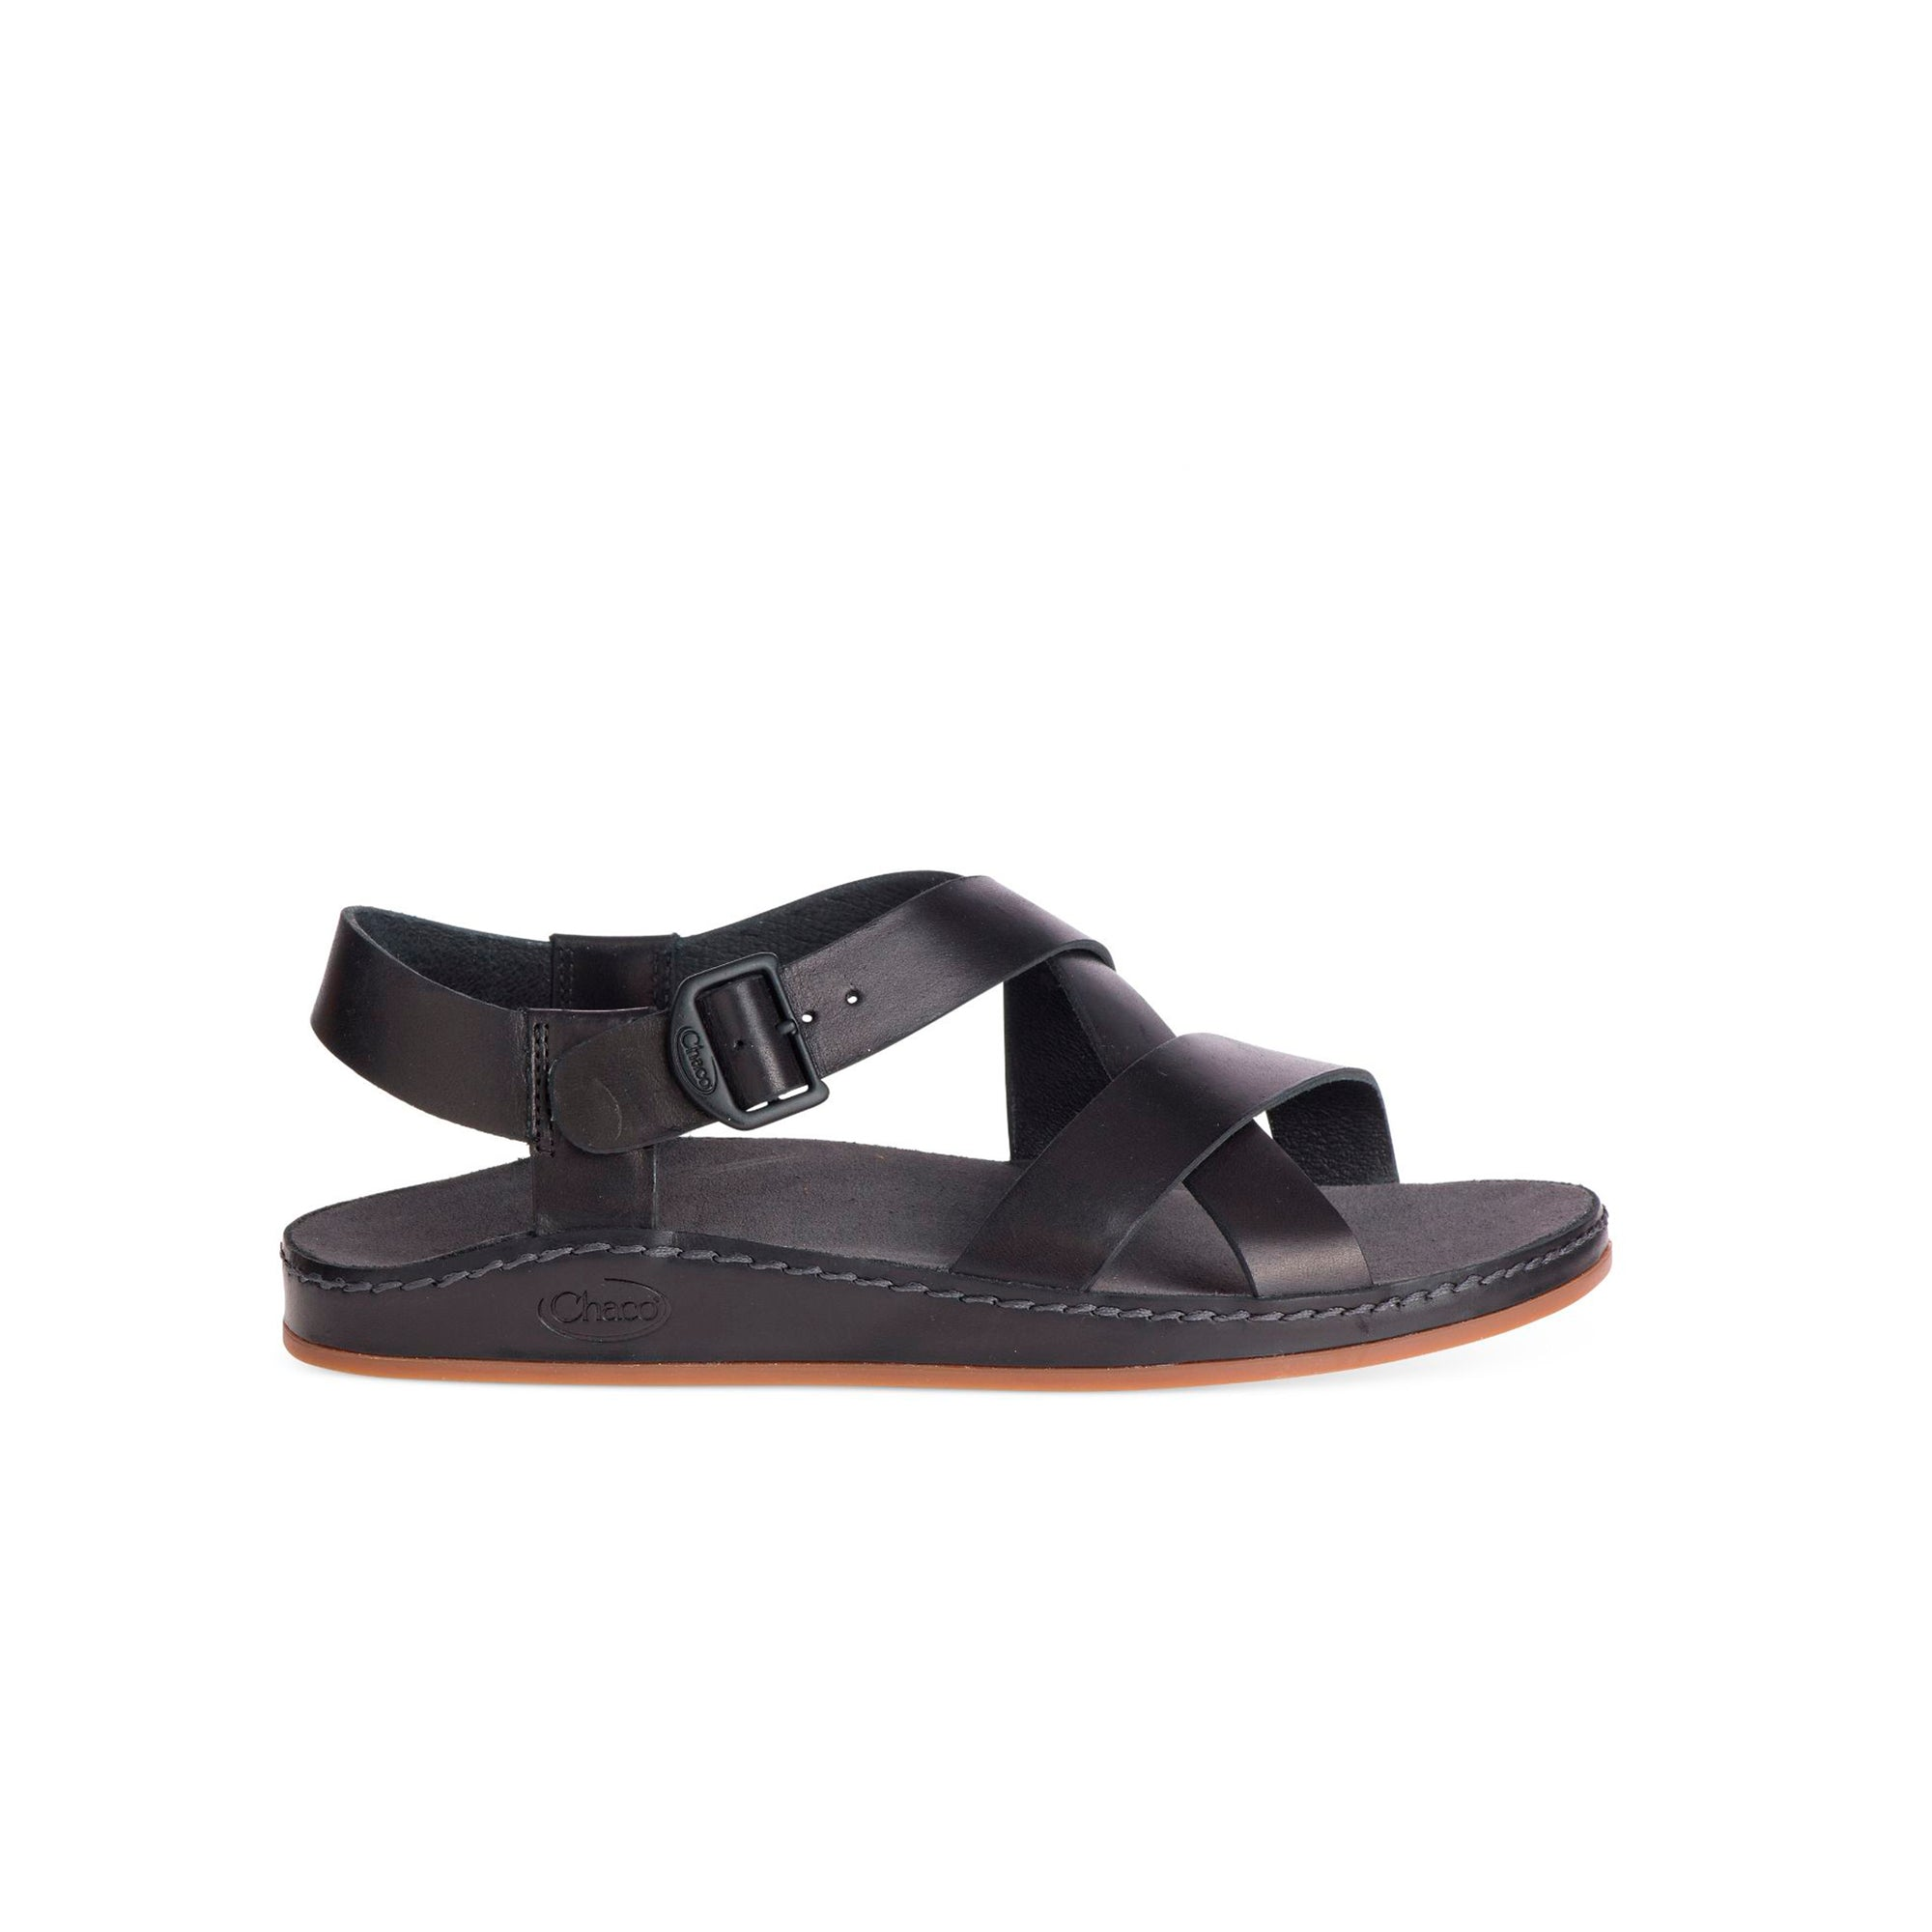 Chaco Womens Wayfarer: Black - The Union Project